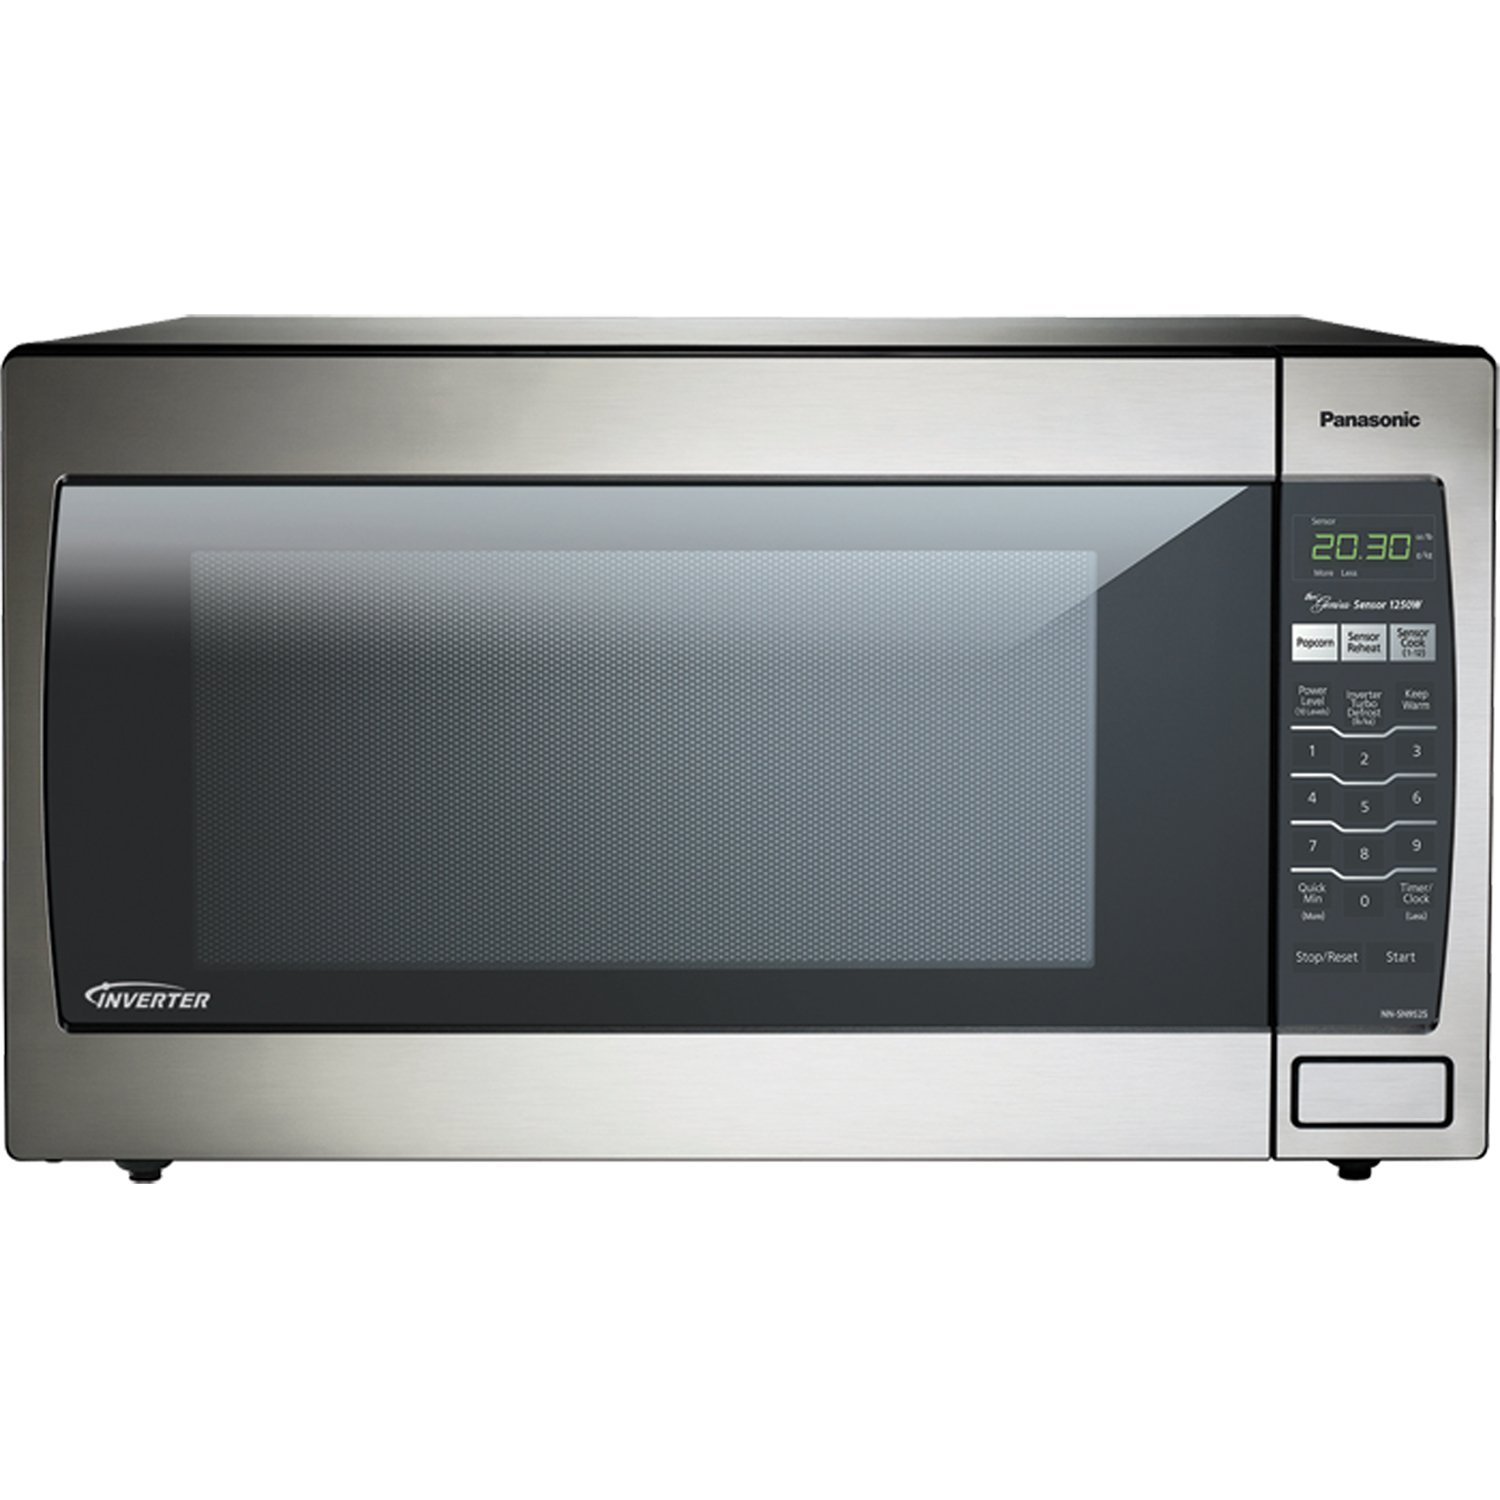 Panasonic NN-SN952S Stainless 1250W 2.2 Cu. Ft. Countertop Microwave Oven with Inverter Technology